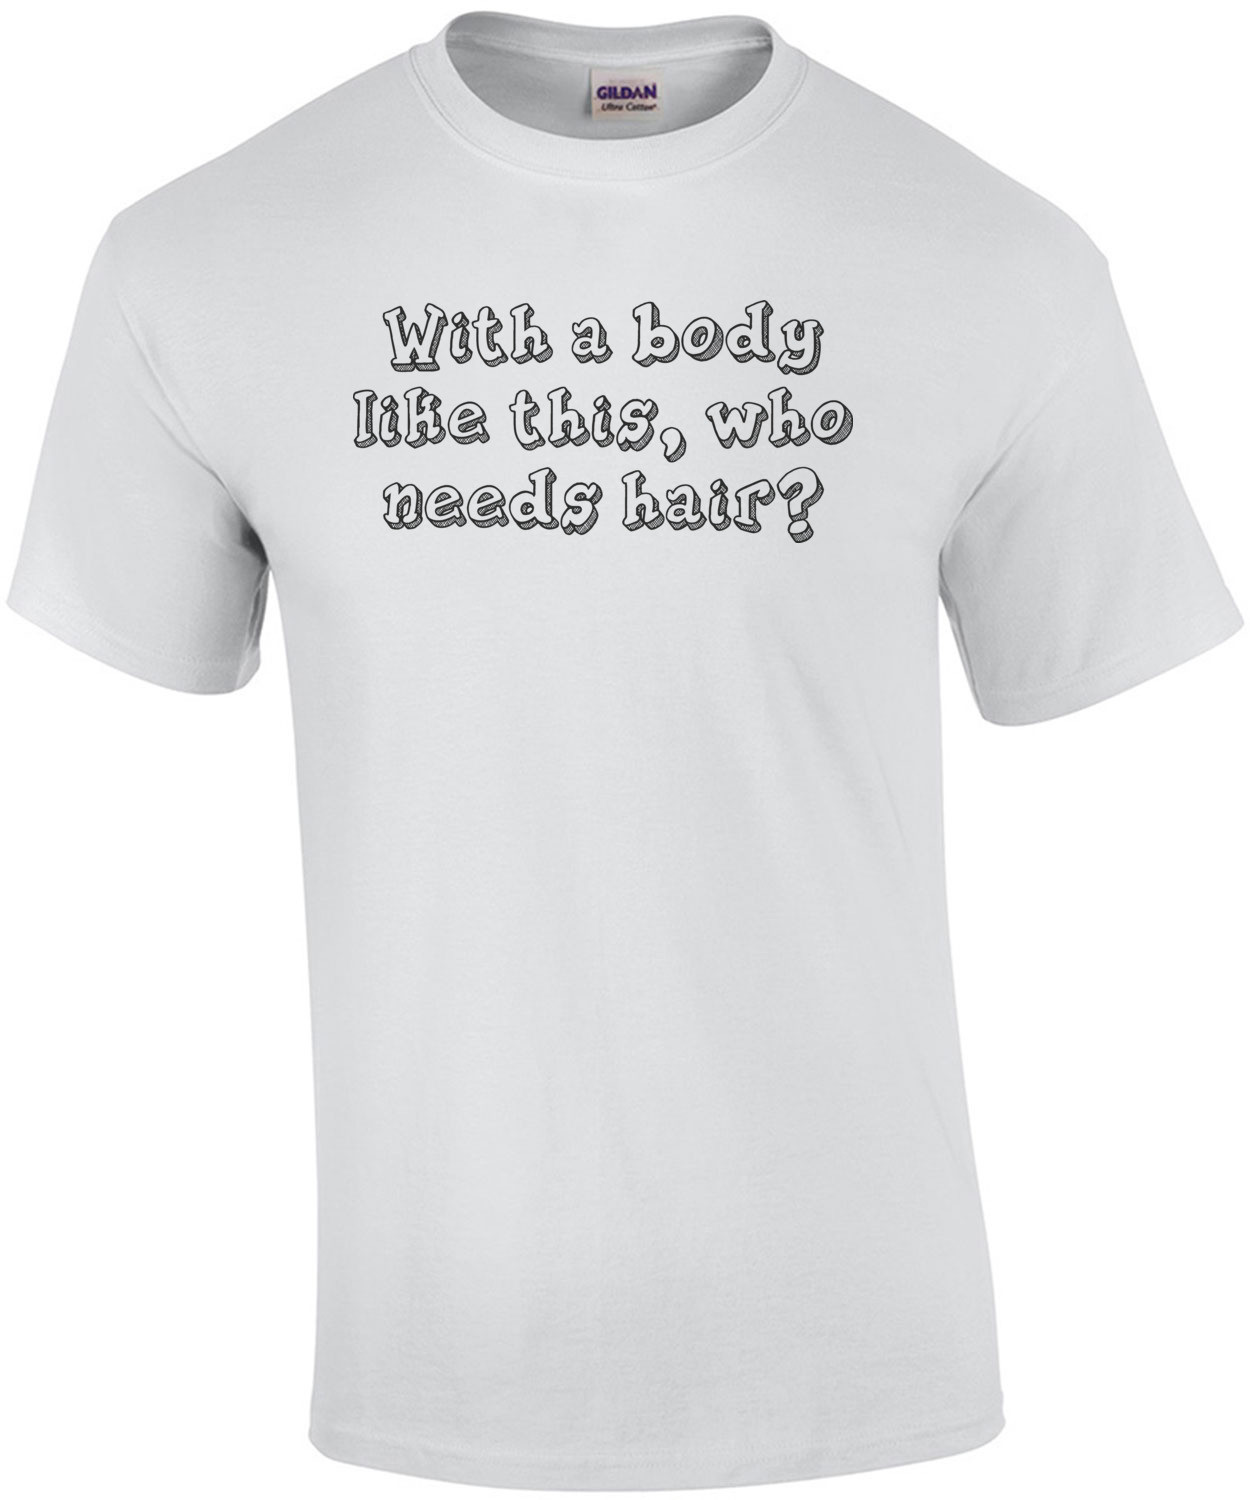 With a body like this, who needs hair? Shirt